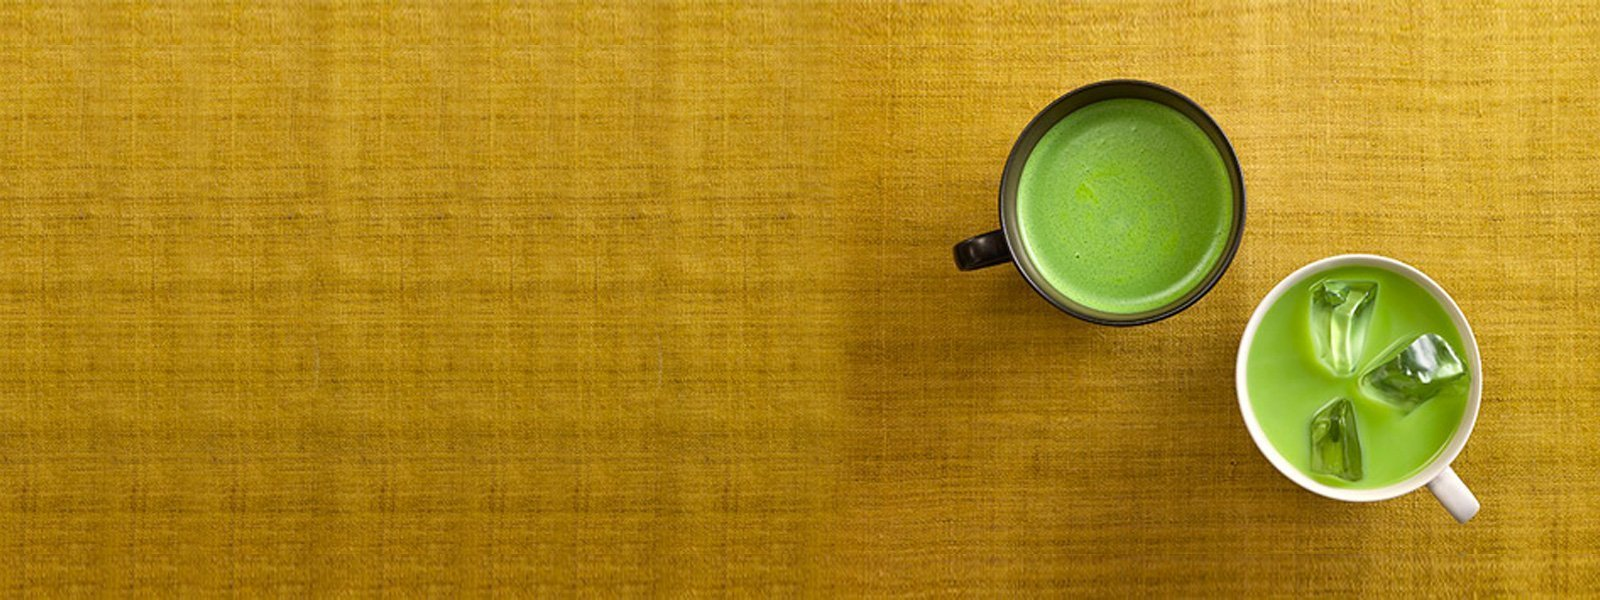 Craving for Matcha Latte Milk? Top 5 Matcha Green Tea Drinks